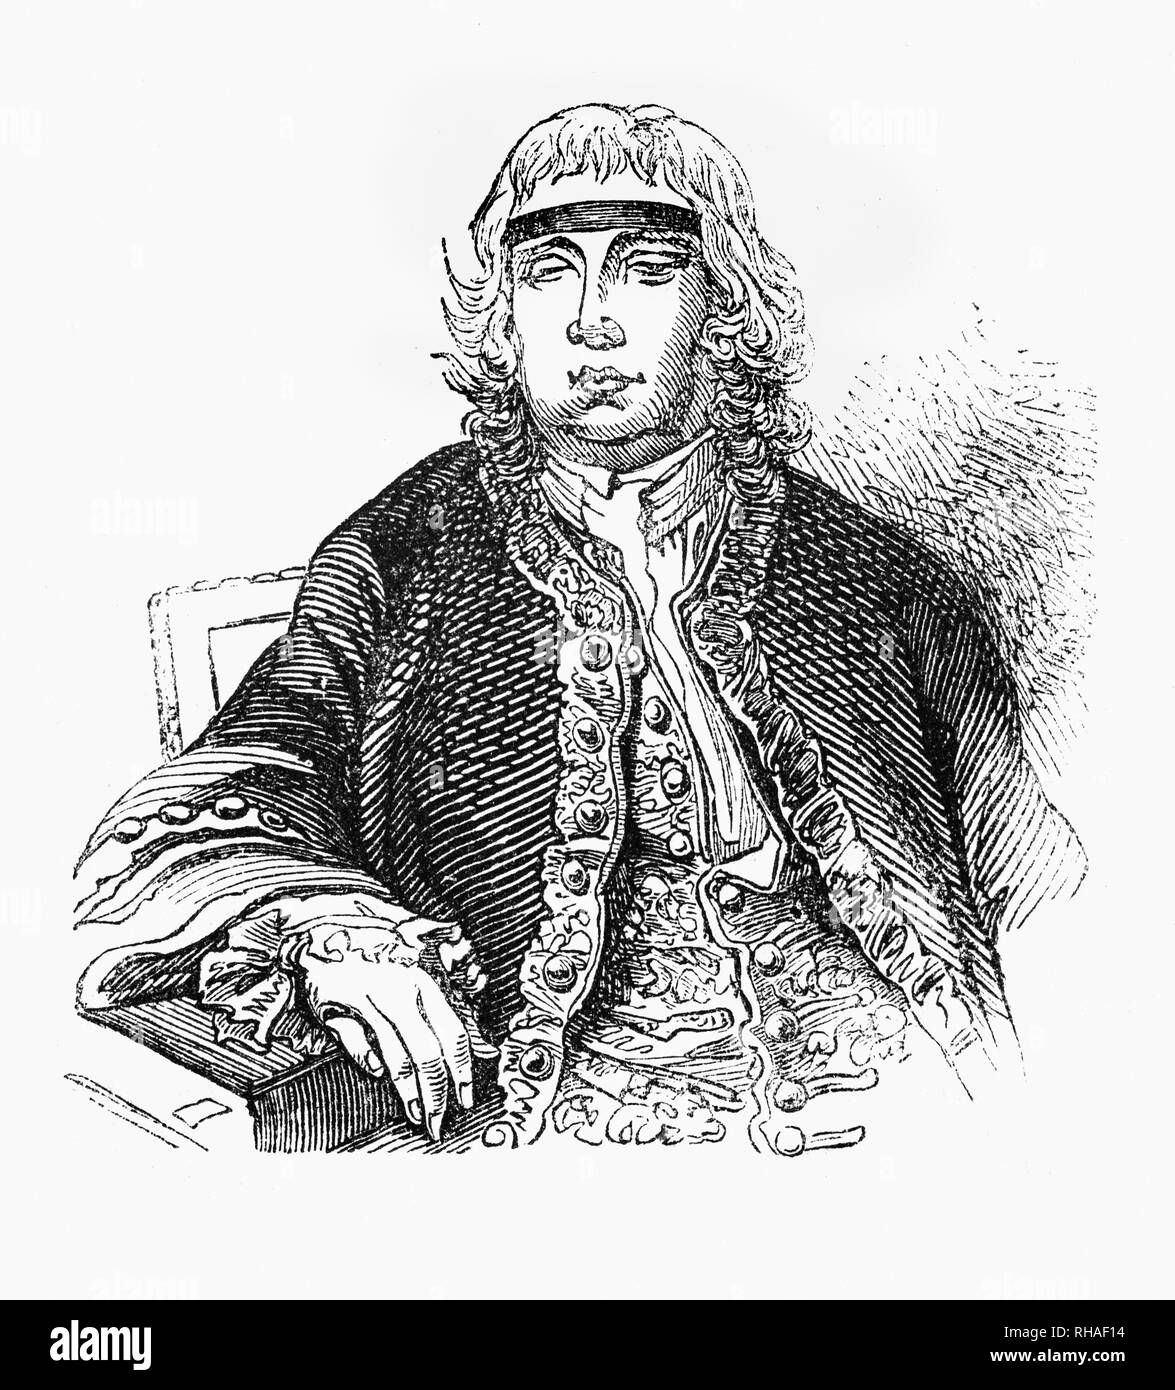 Portrait of Sir John Fielding (1721-1780), English magistrate and social reformer of the 18th century. Despite being blinded aged19, John studied law with his half-brother and chief magistrate Henry Fielding.  John Fielding was known as the 'Blind Beak' for his ability to identify criminals by the sound of their voices. He root out corruption and improved justice in London. They formed the first professional police force, the Bow Street Runners, circulated the Police Gazette with descriptions of known criminals and established the first police criminal records department. - Stock Image